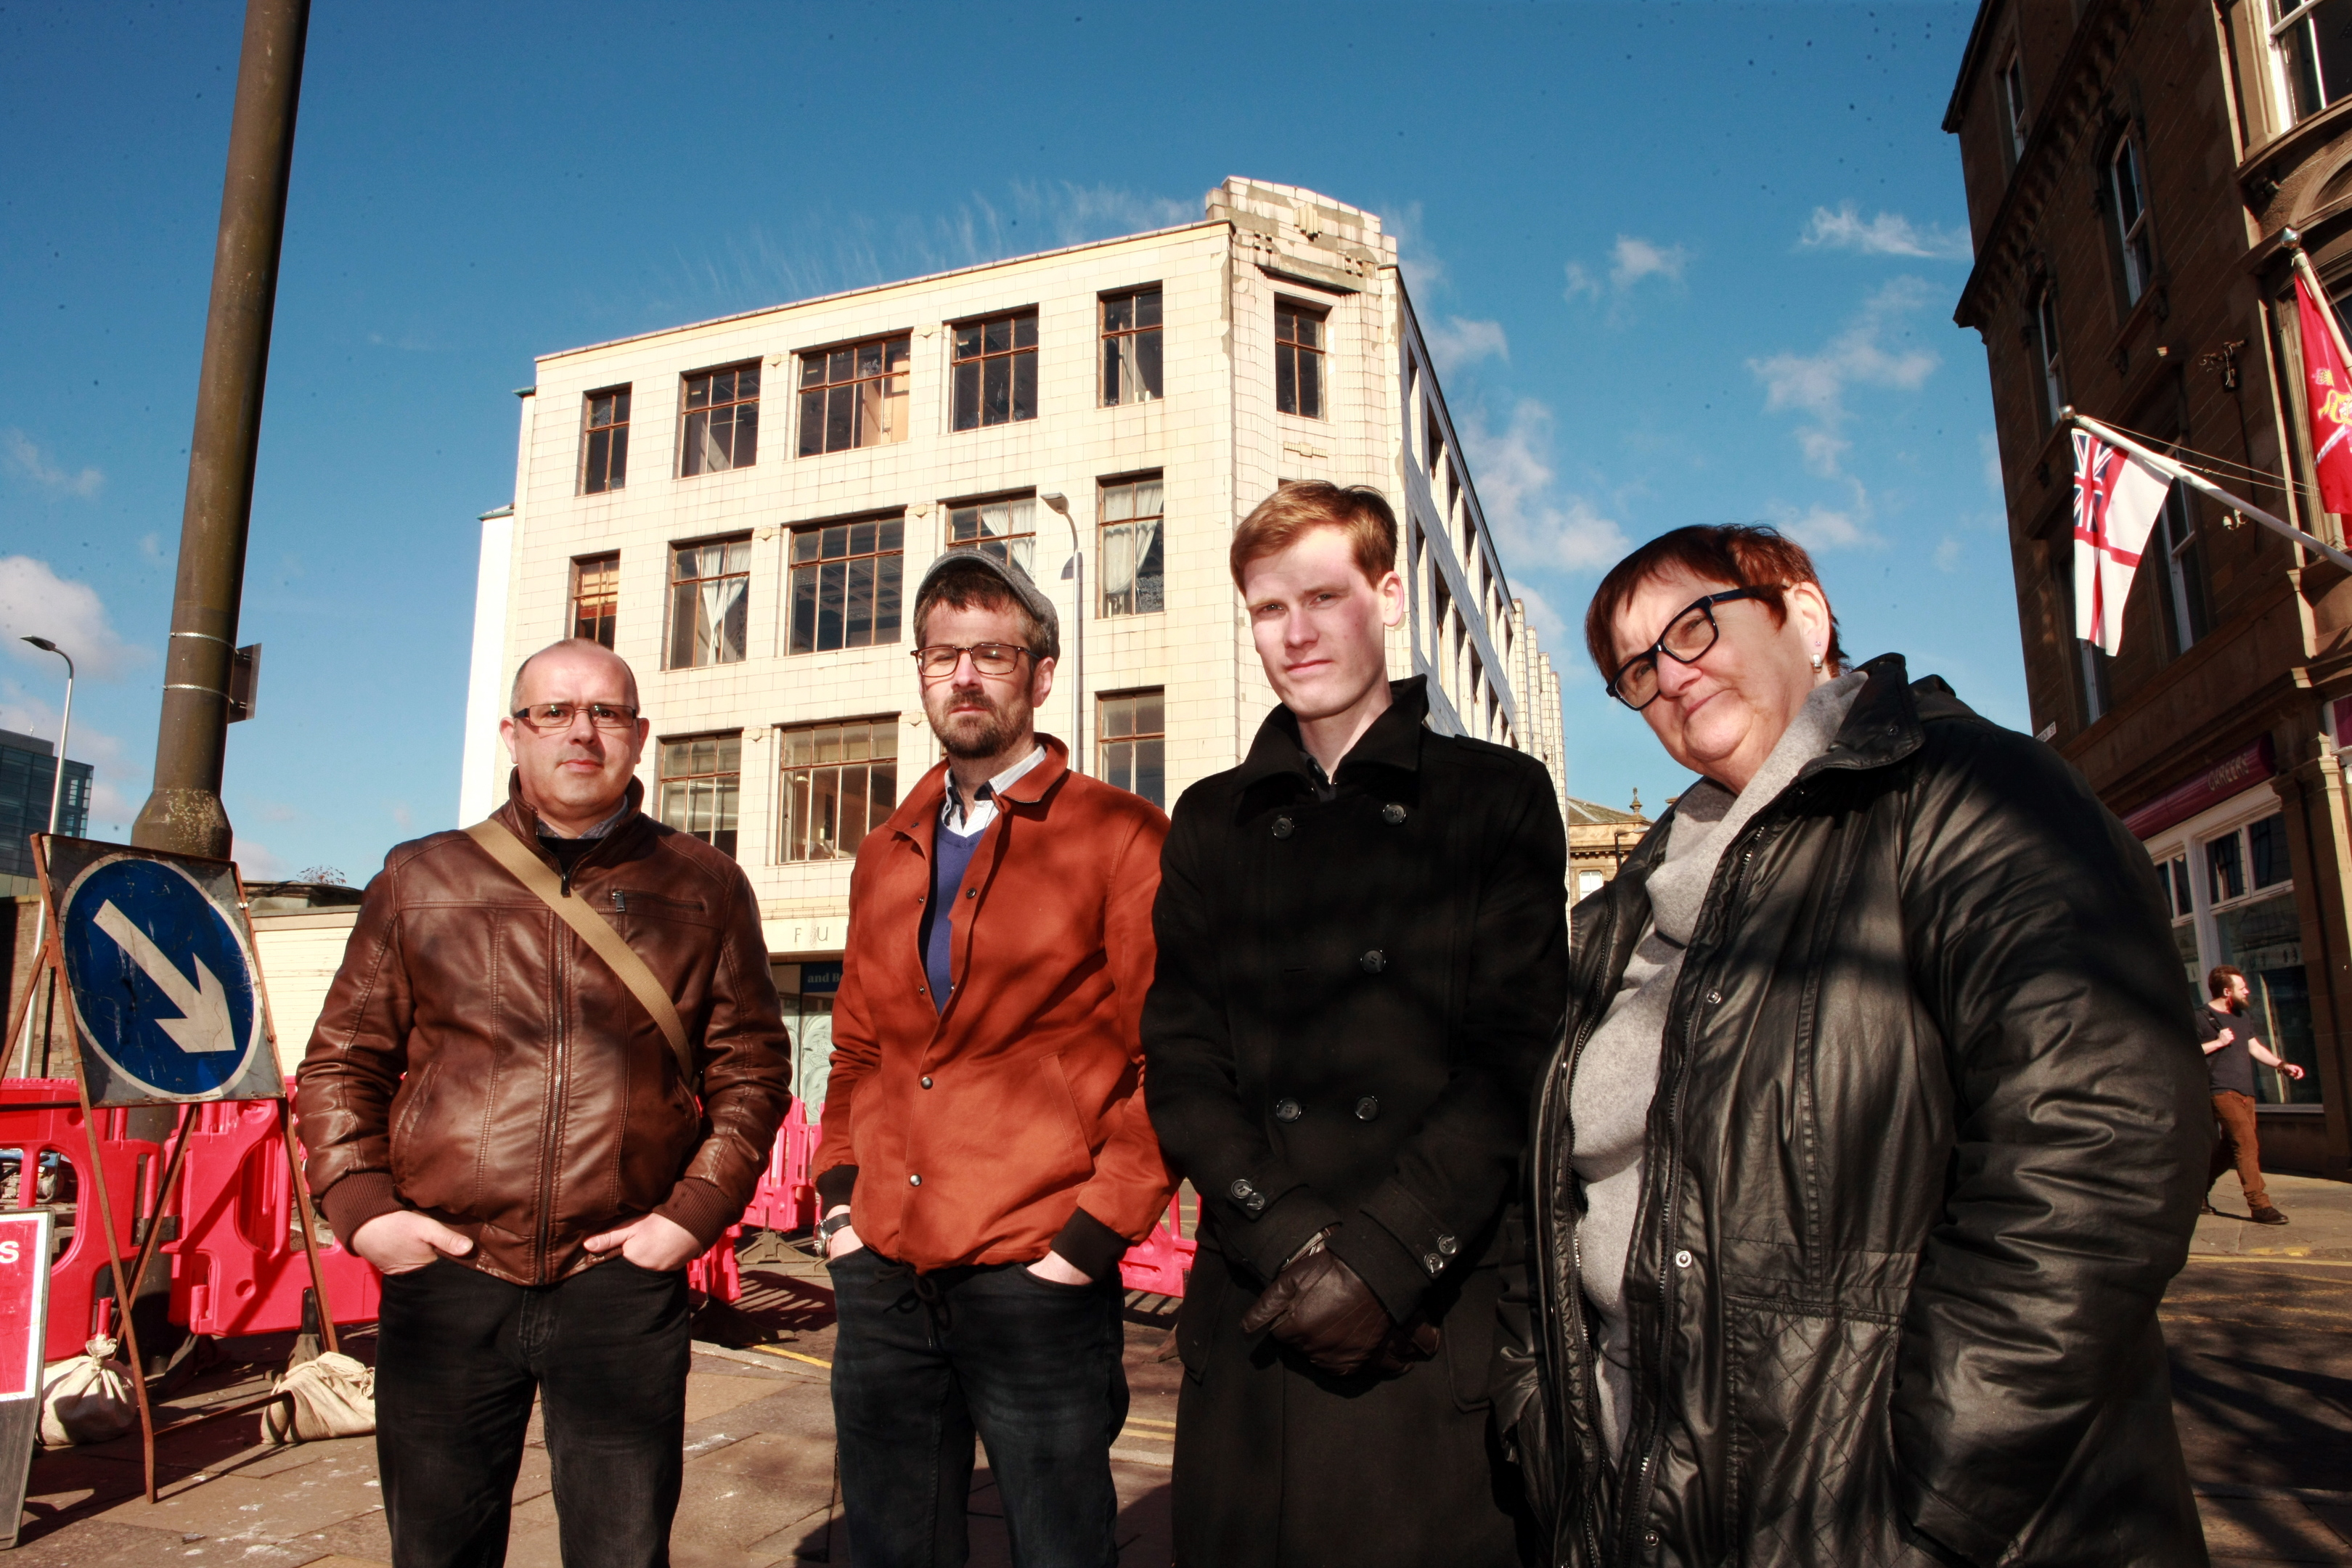 Phil Doig and other campaigners fought to turn the building into a cultural hub.